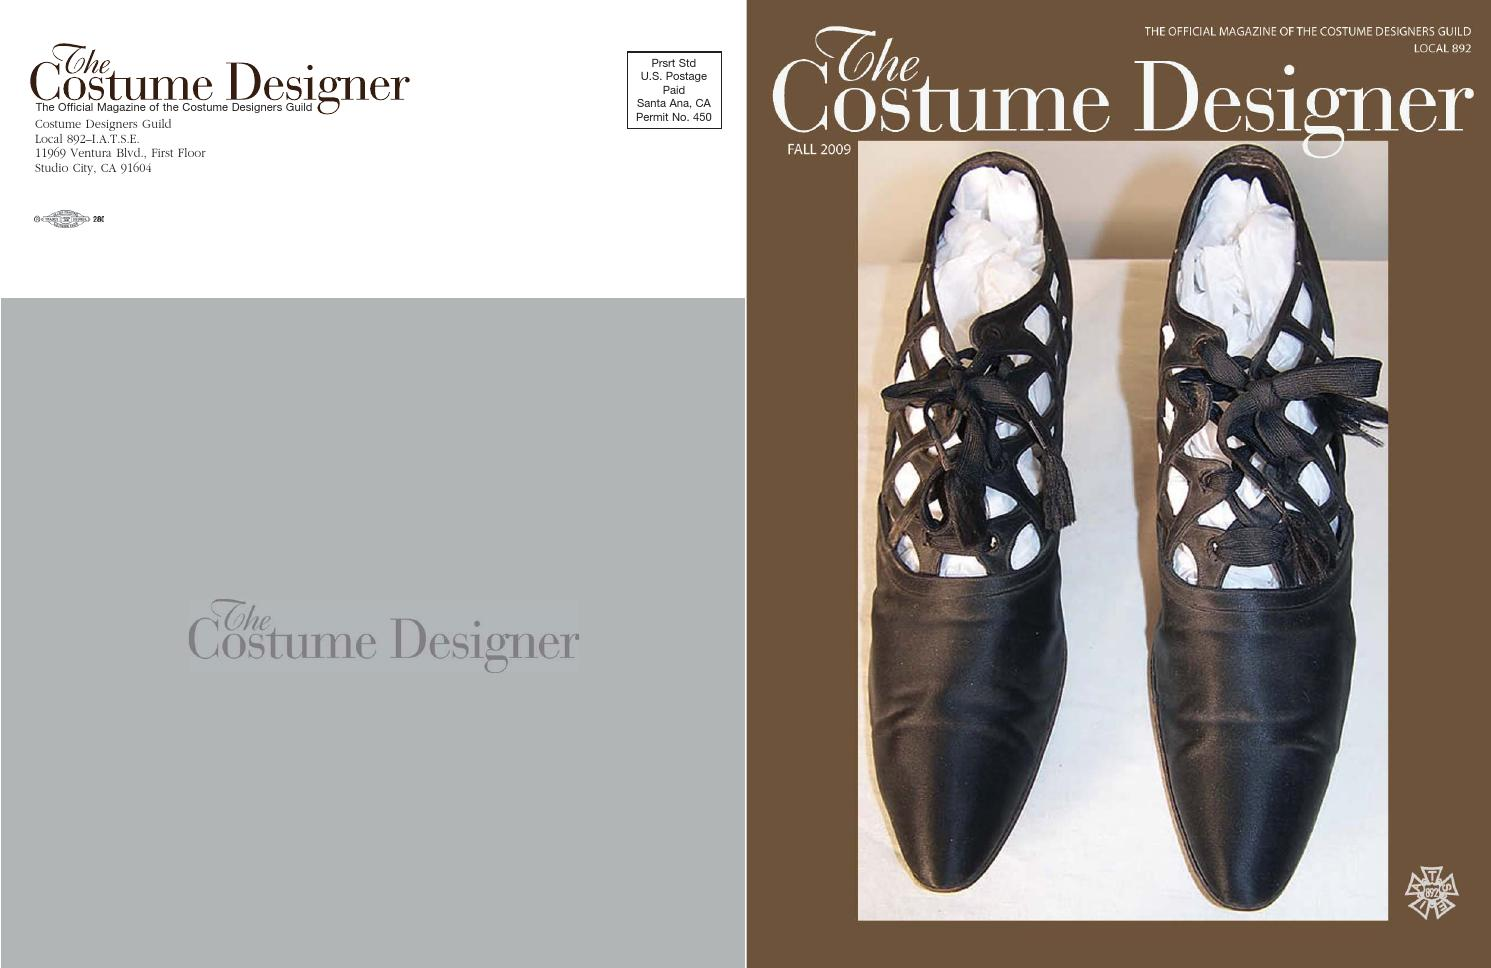 The Costume Designer Fall 2009 By Costume Designers Guild Issuu